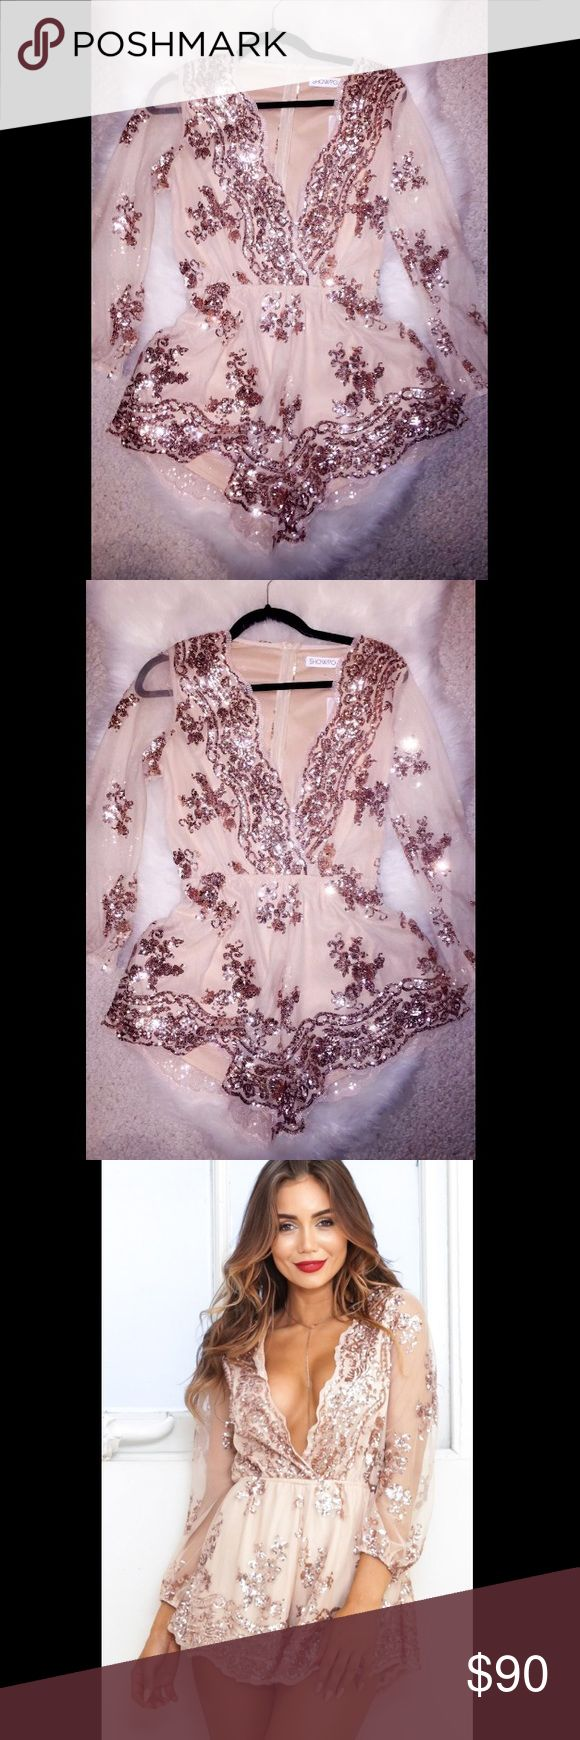 SHOWPO Rose Gold Playsuit, NEVER WORN Brand new NWT SHOWPO Playsuit. It's seriously stunning I purchased for my birthday but so sadly never got to wear it. Women's size 8 SHOWPO Dresses